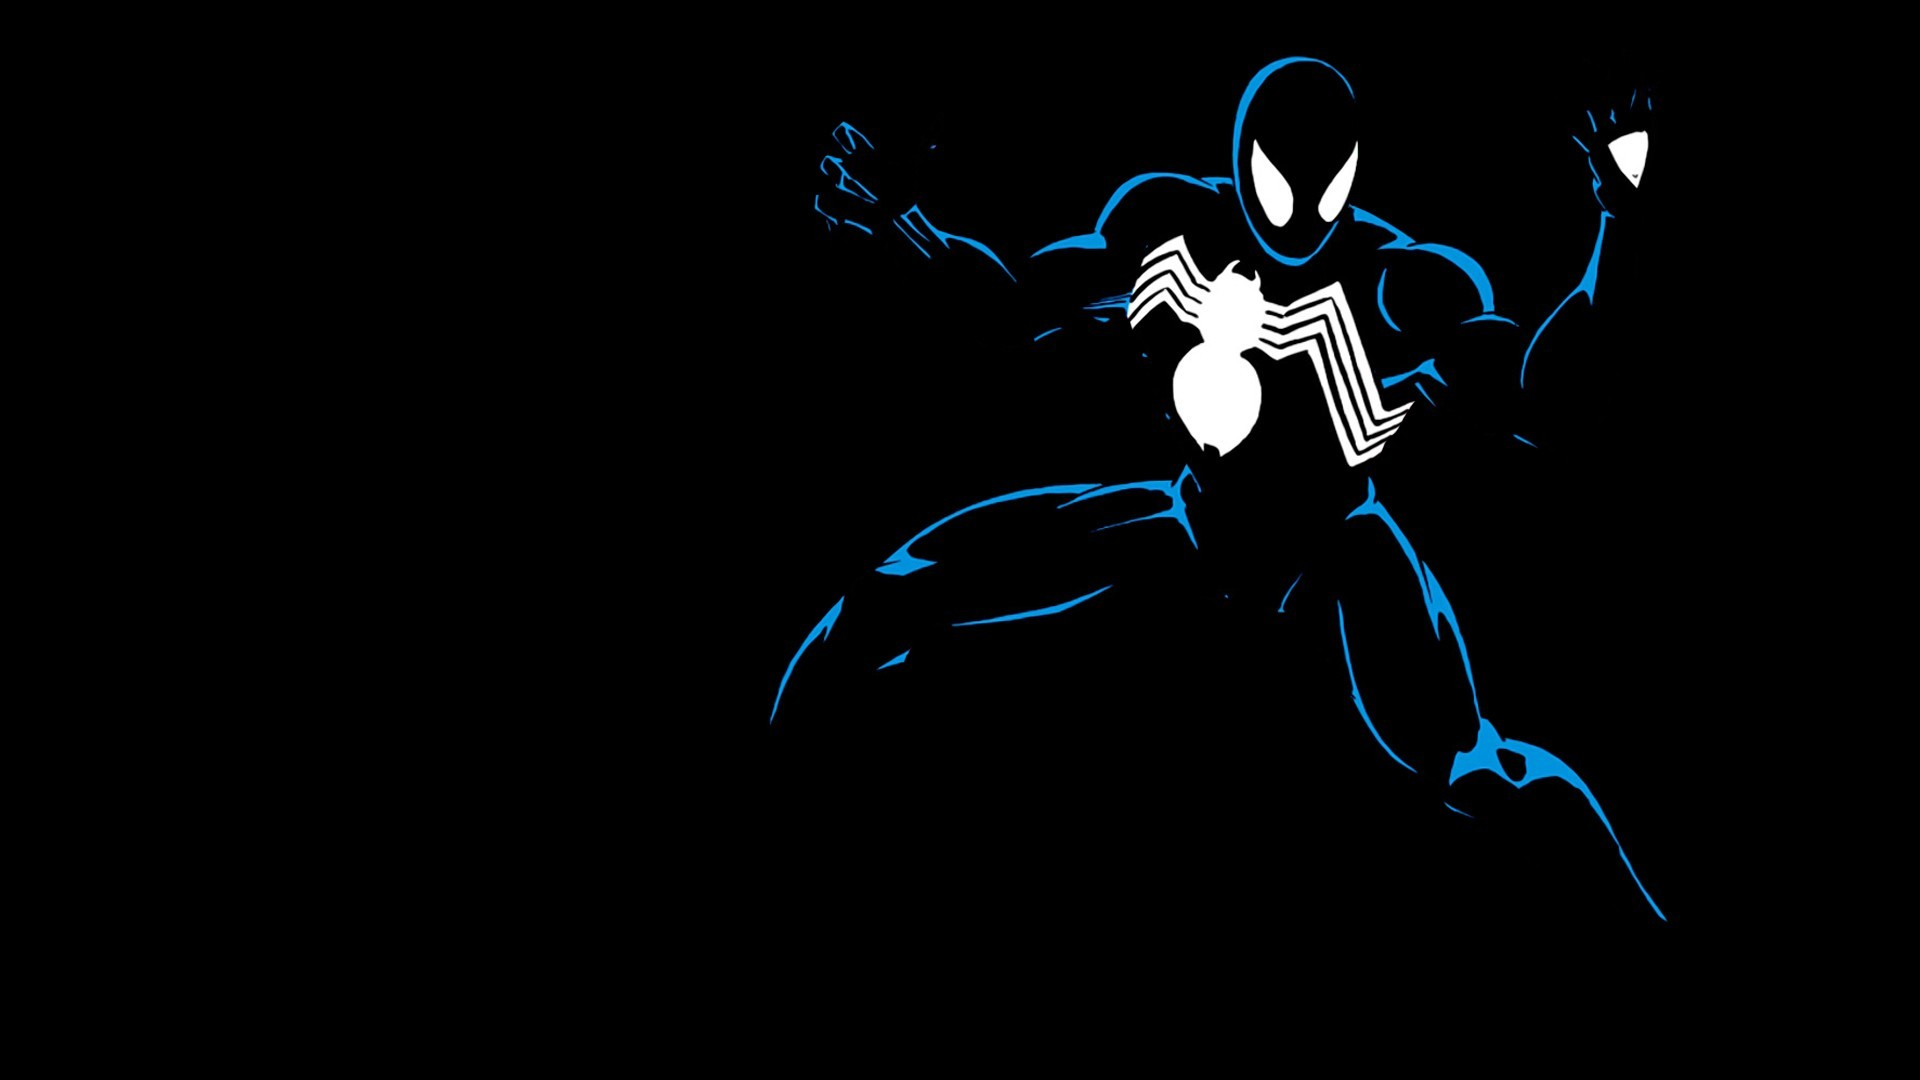 10 Best Spider Man 2099 Wallpaper Hd Full Hd 1920 1080 For: Symbiote Spiderman Wallpaper ·①